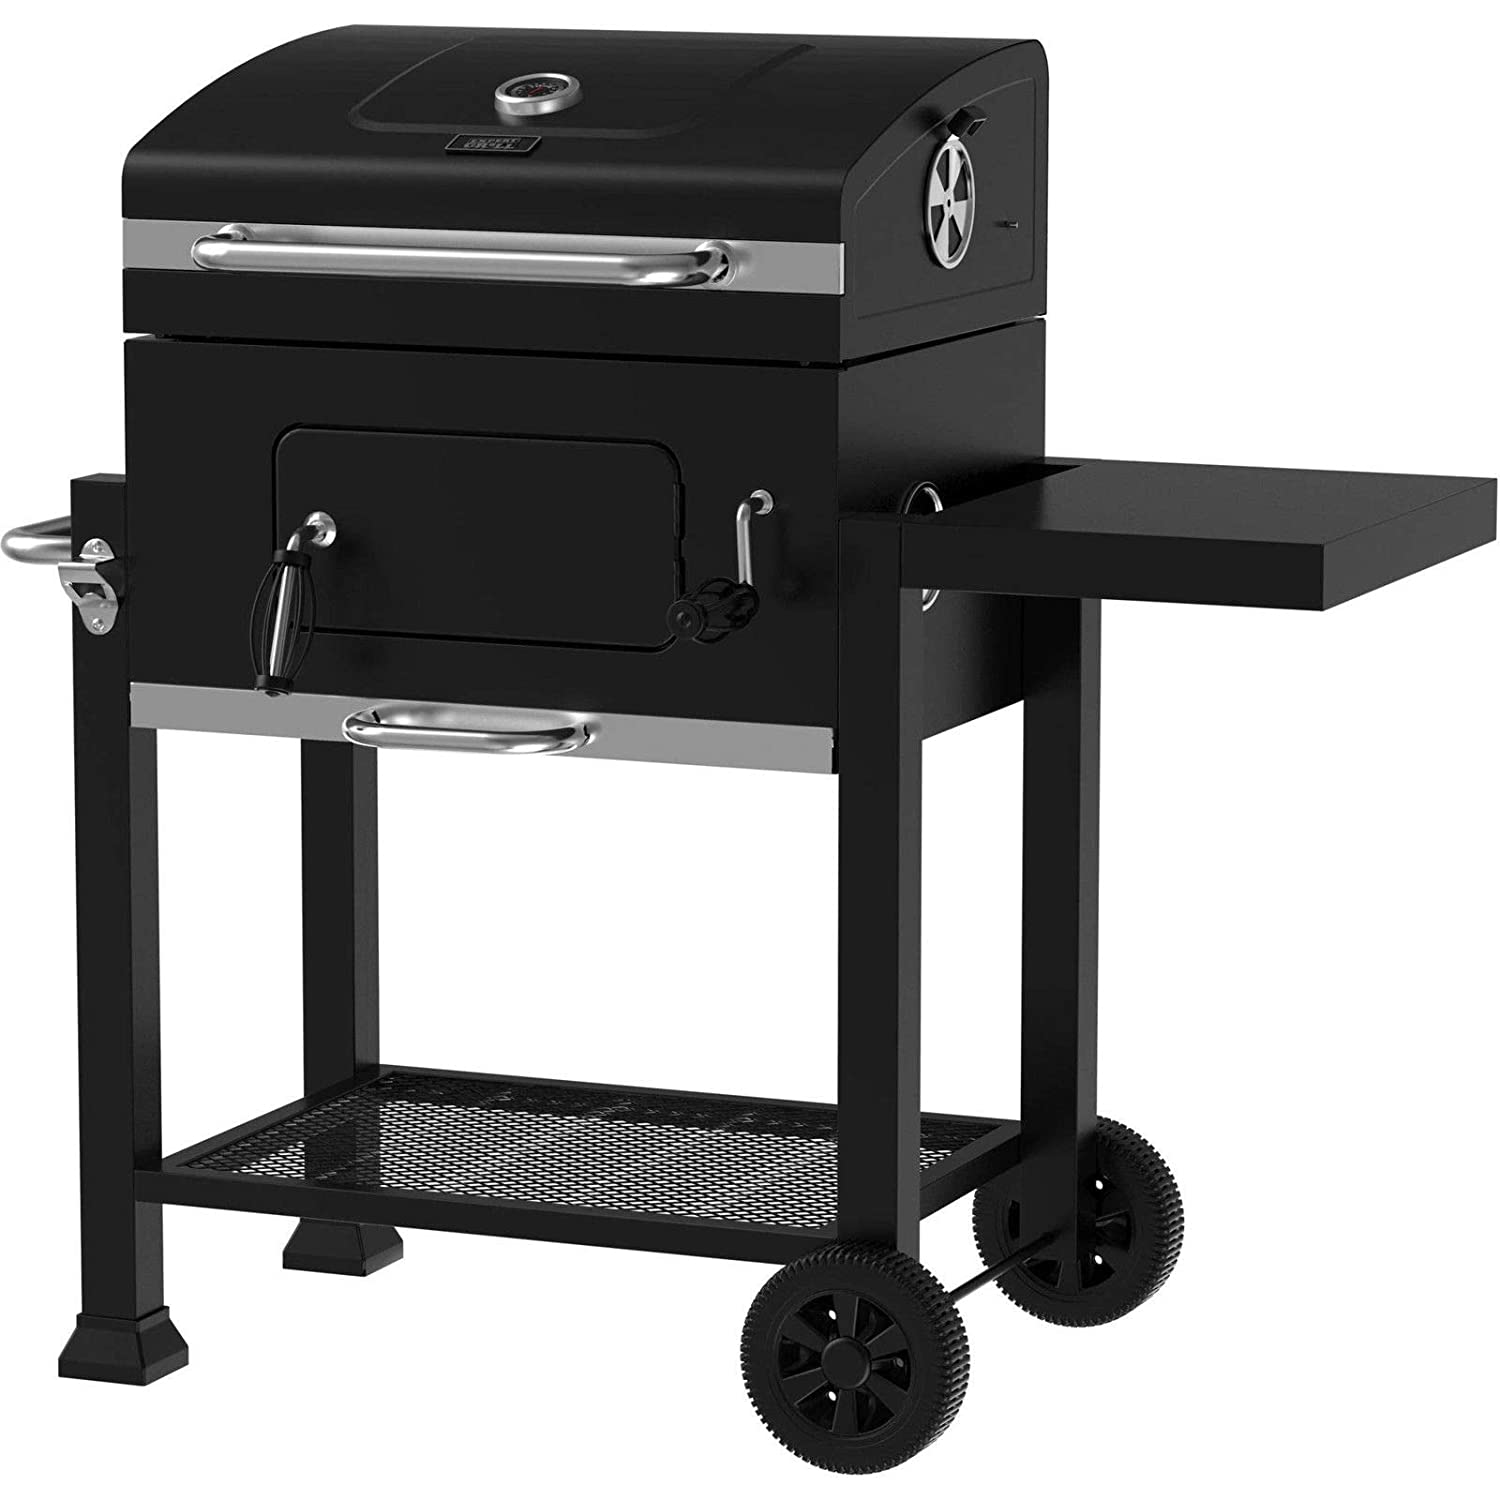 Expert Grill Heavy Duty 24-Inch Charcoal Grill XG1709603411